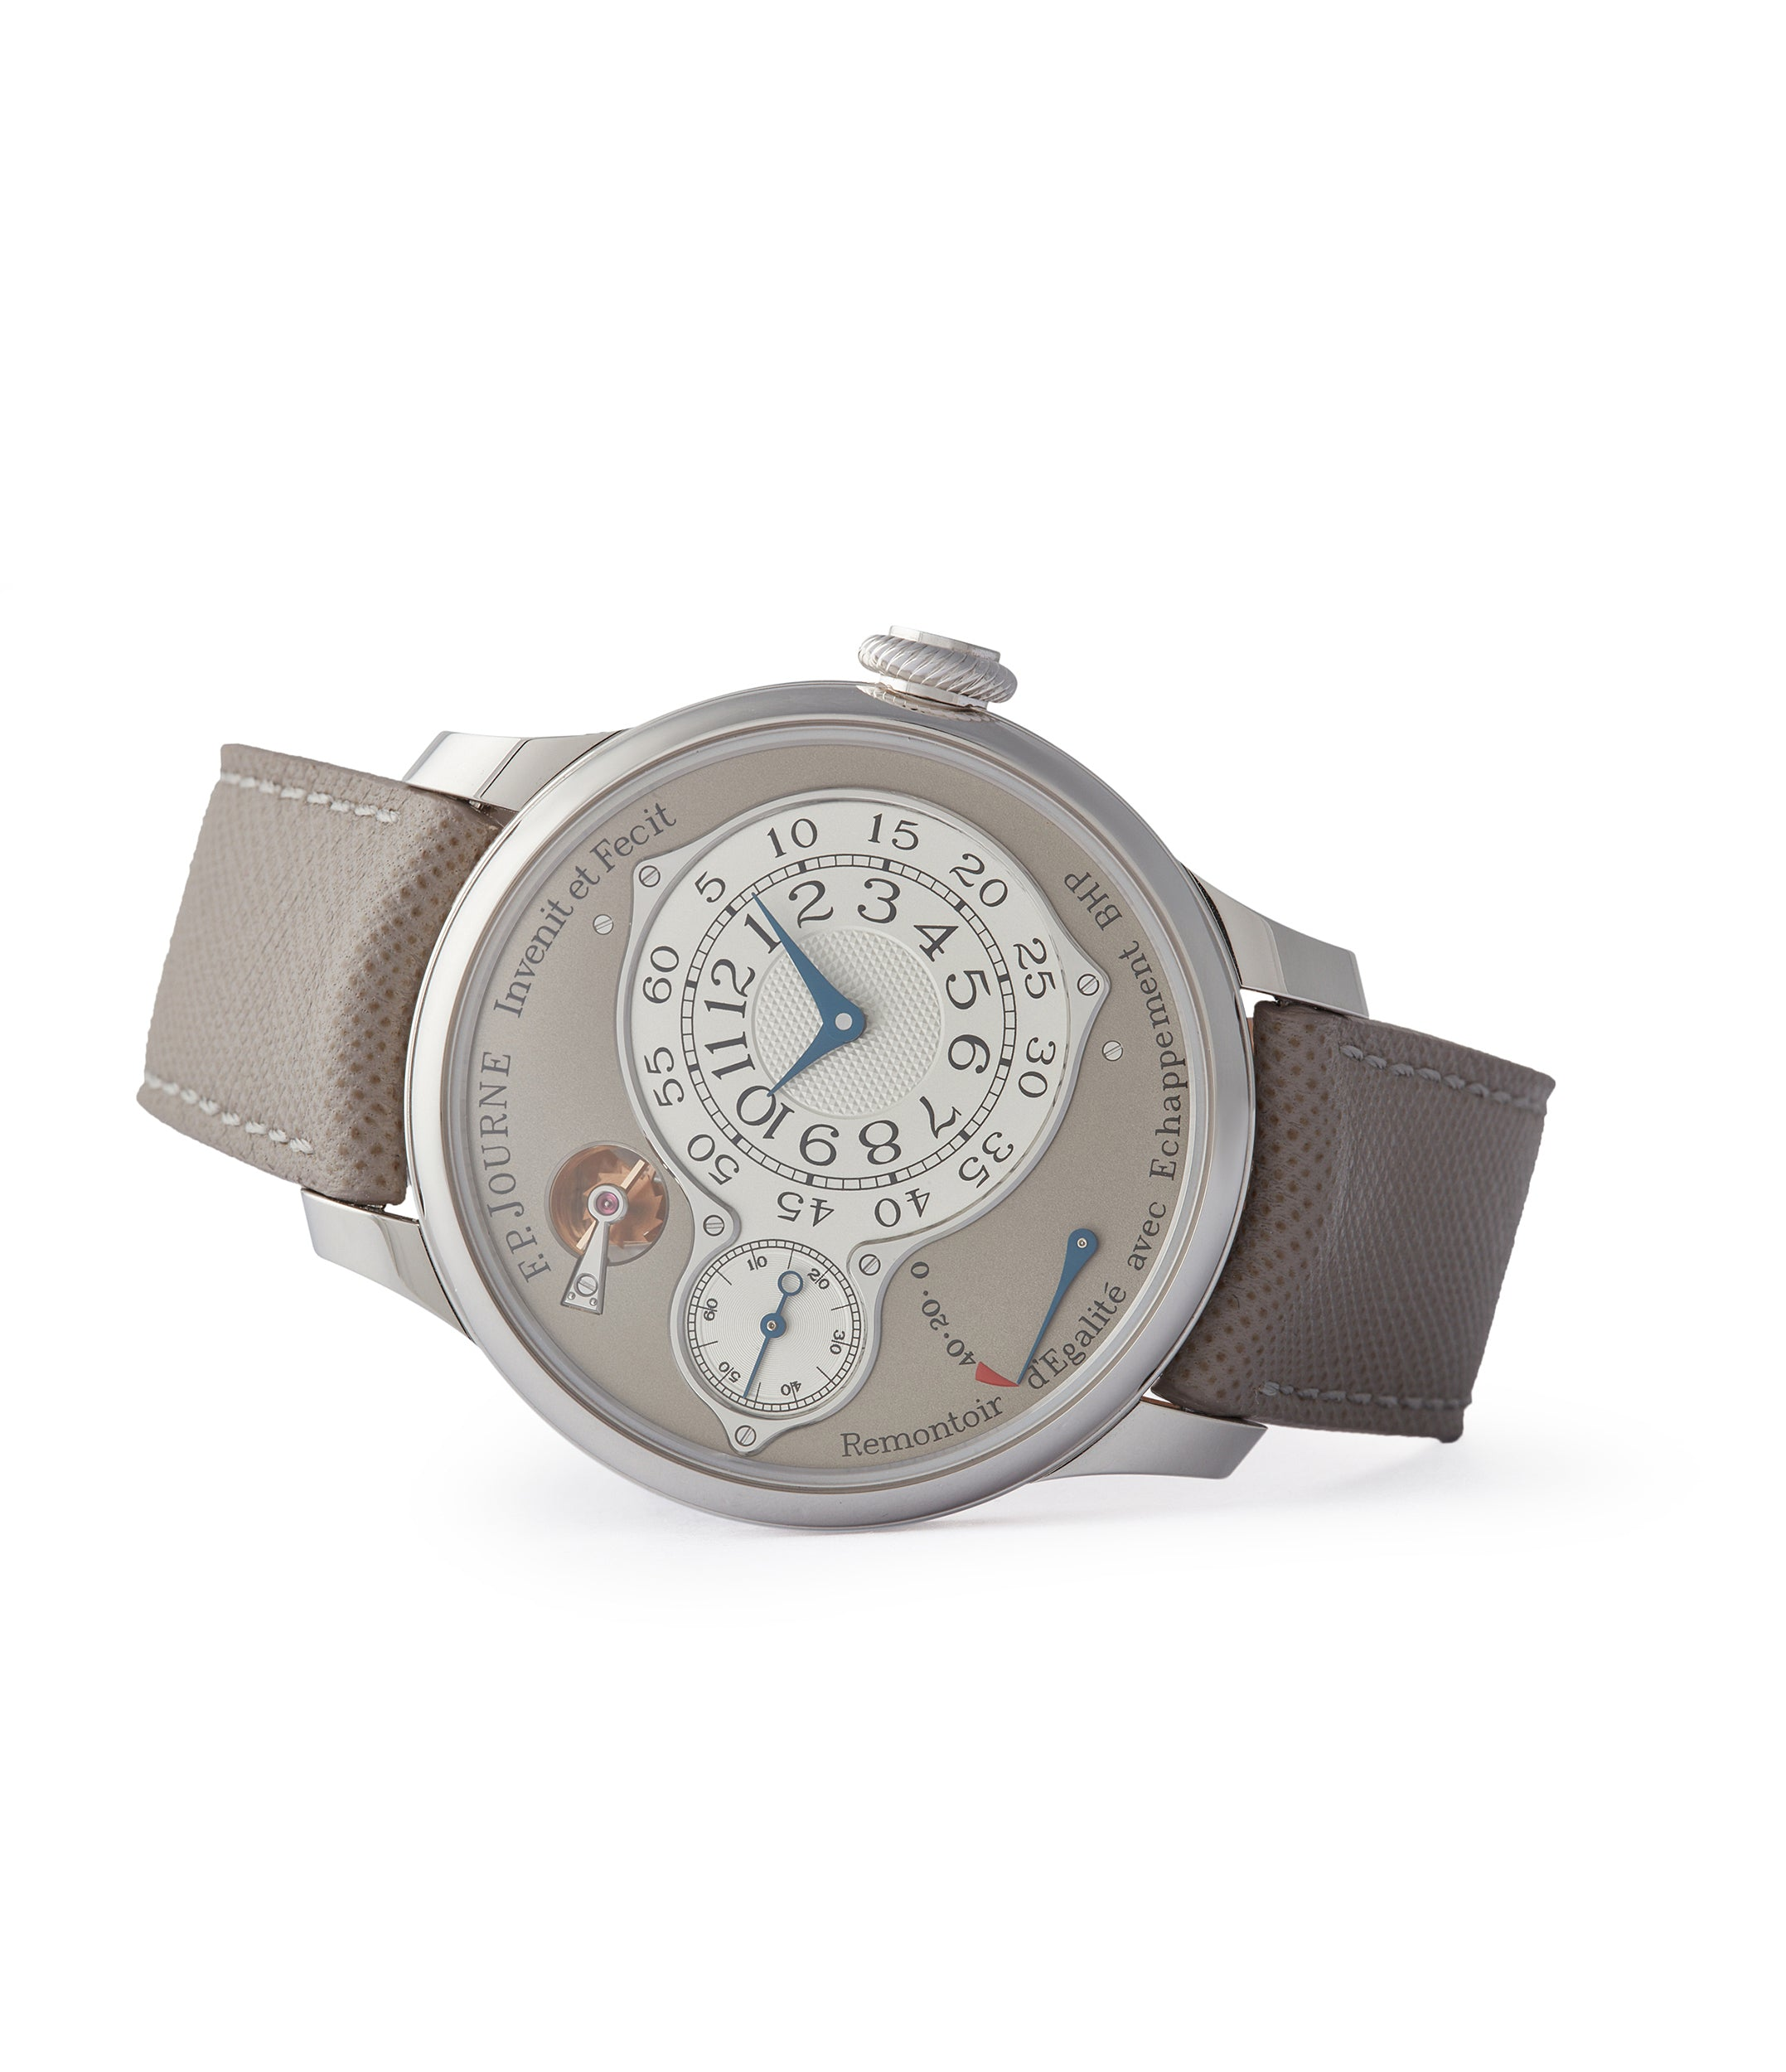 side-shot Journe grey dial Chronometre Optimum 40mm platinum pre-owned dress watch for sale at A Collected Man London selling independent watchmakers